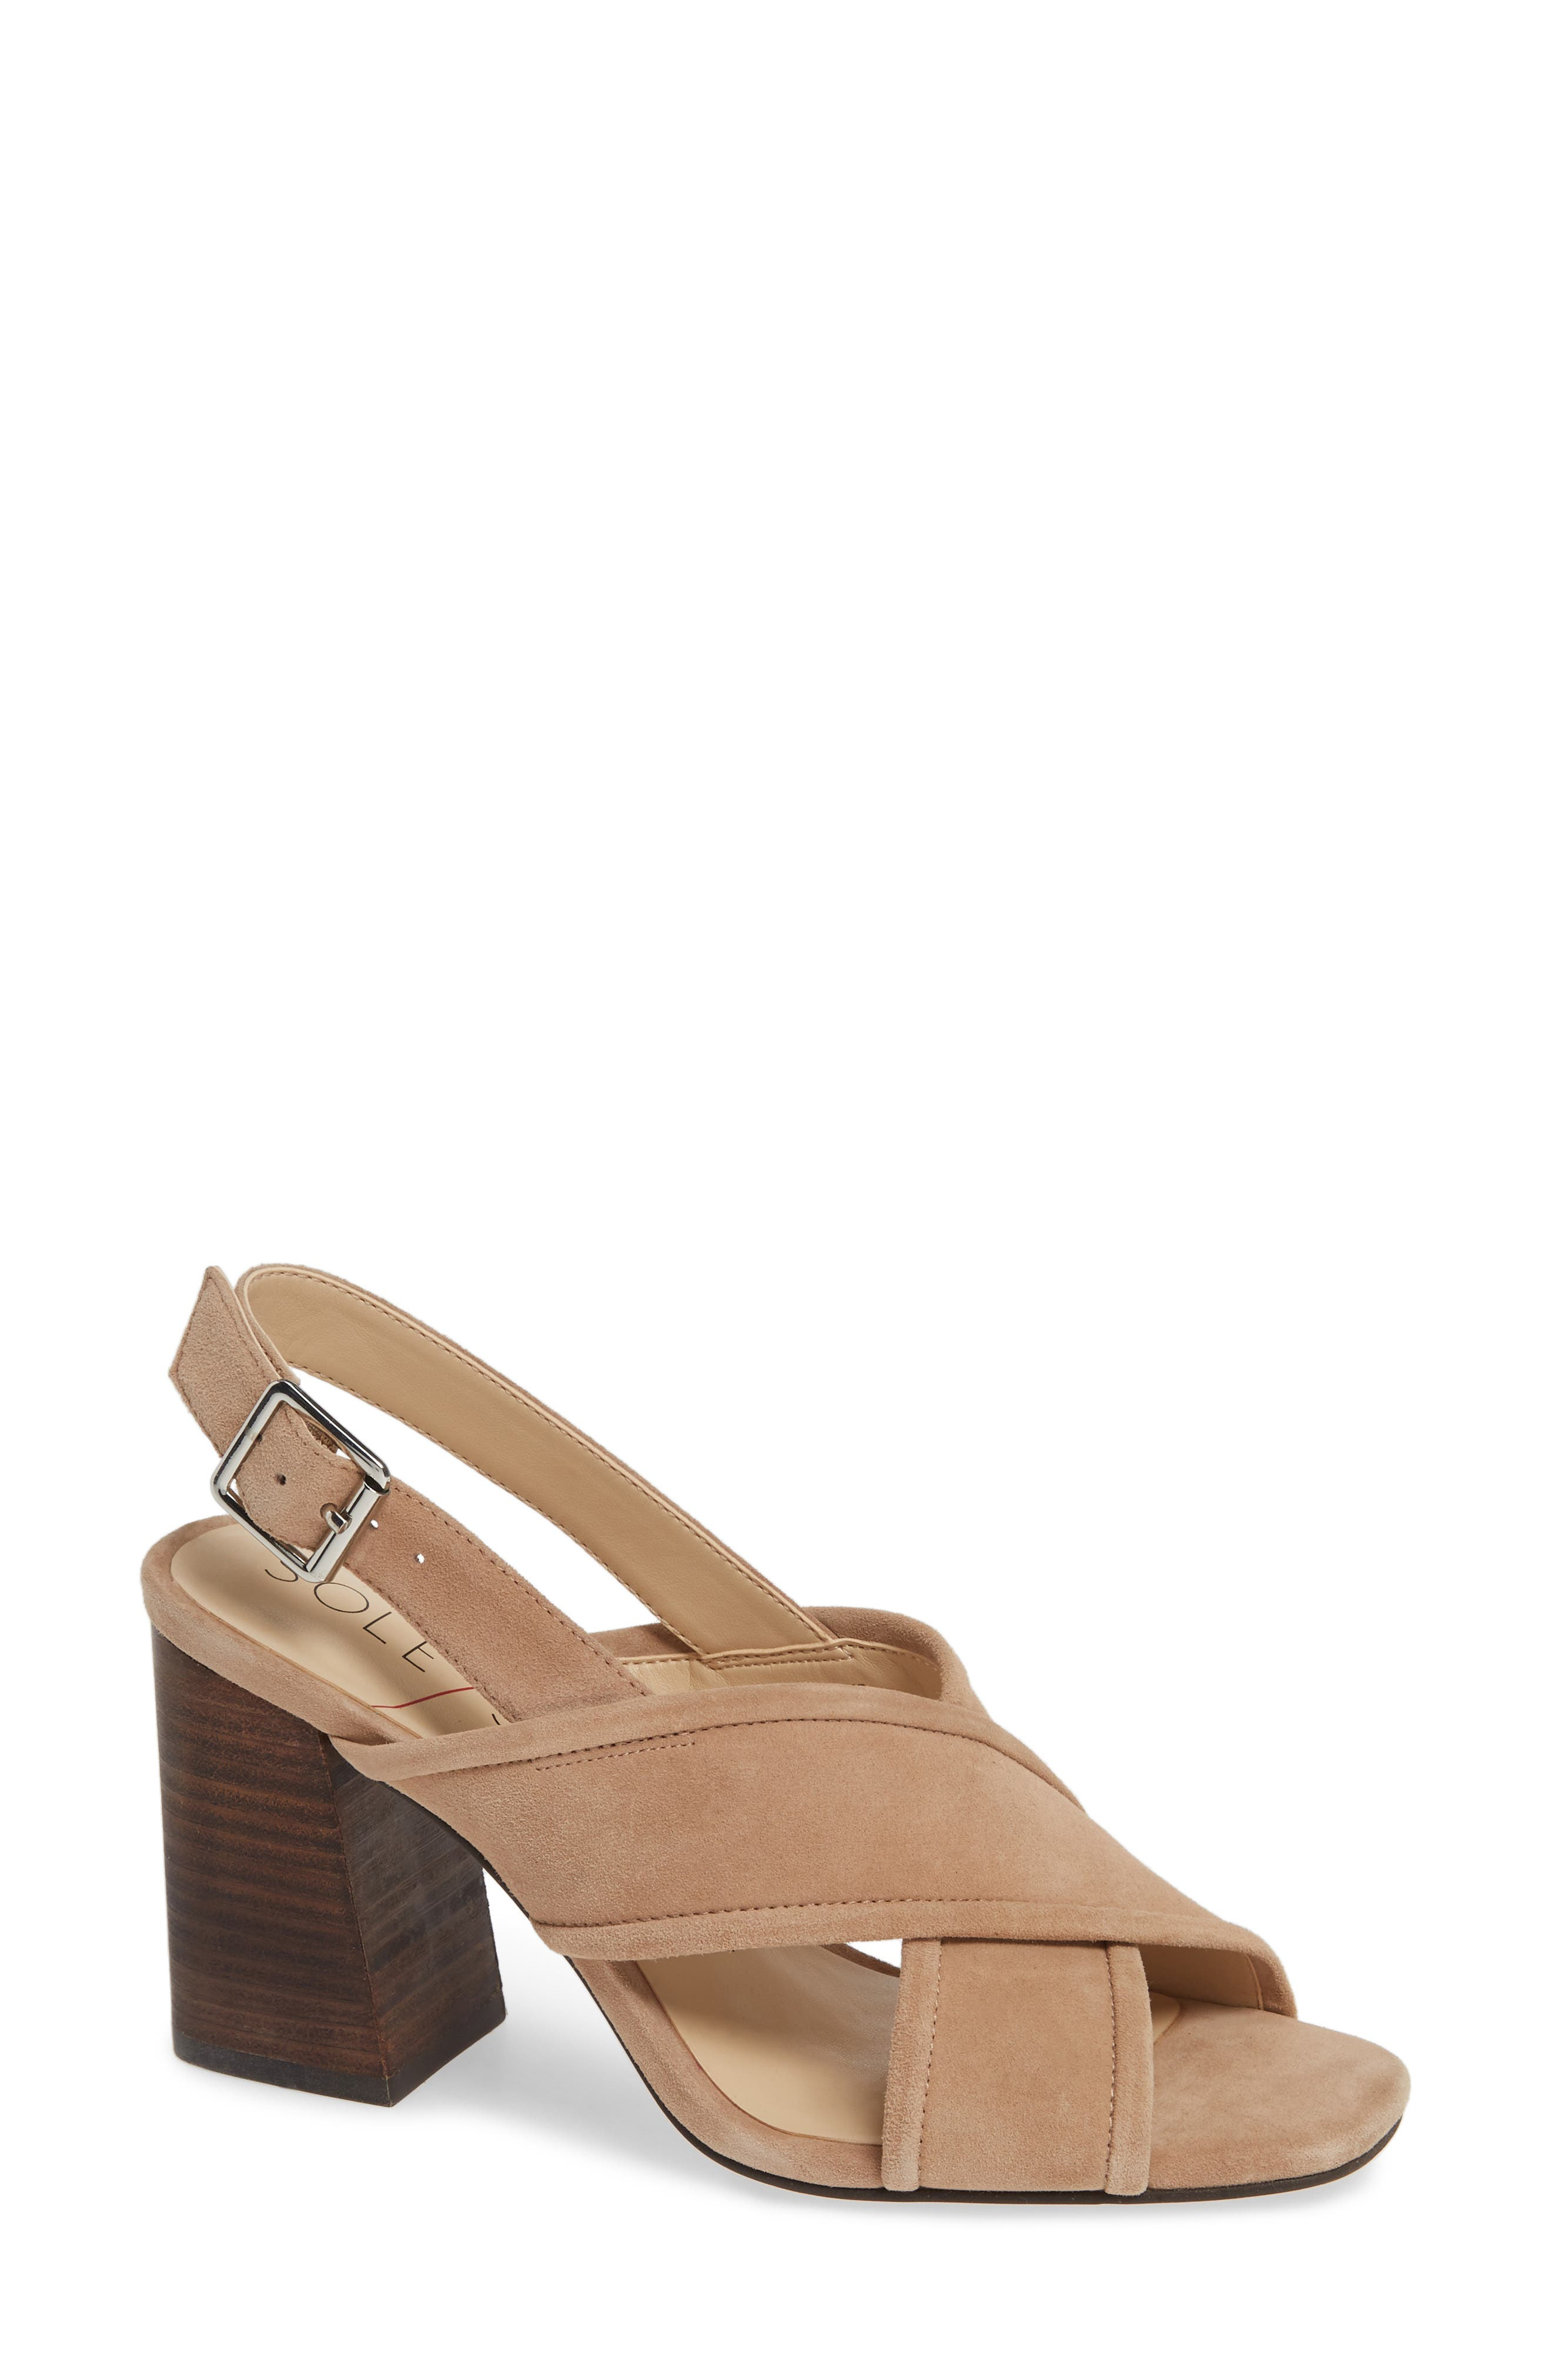 Joree Slingback Sandal, Main, color, DUSTED TAUPE SUEDE